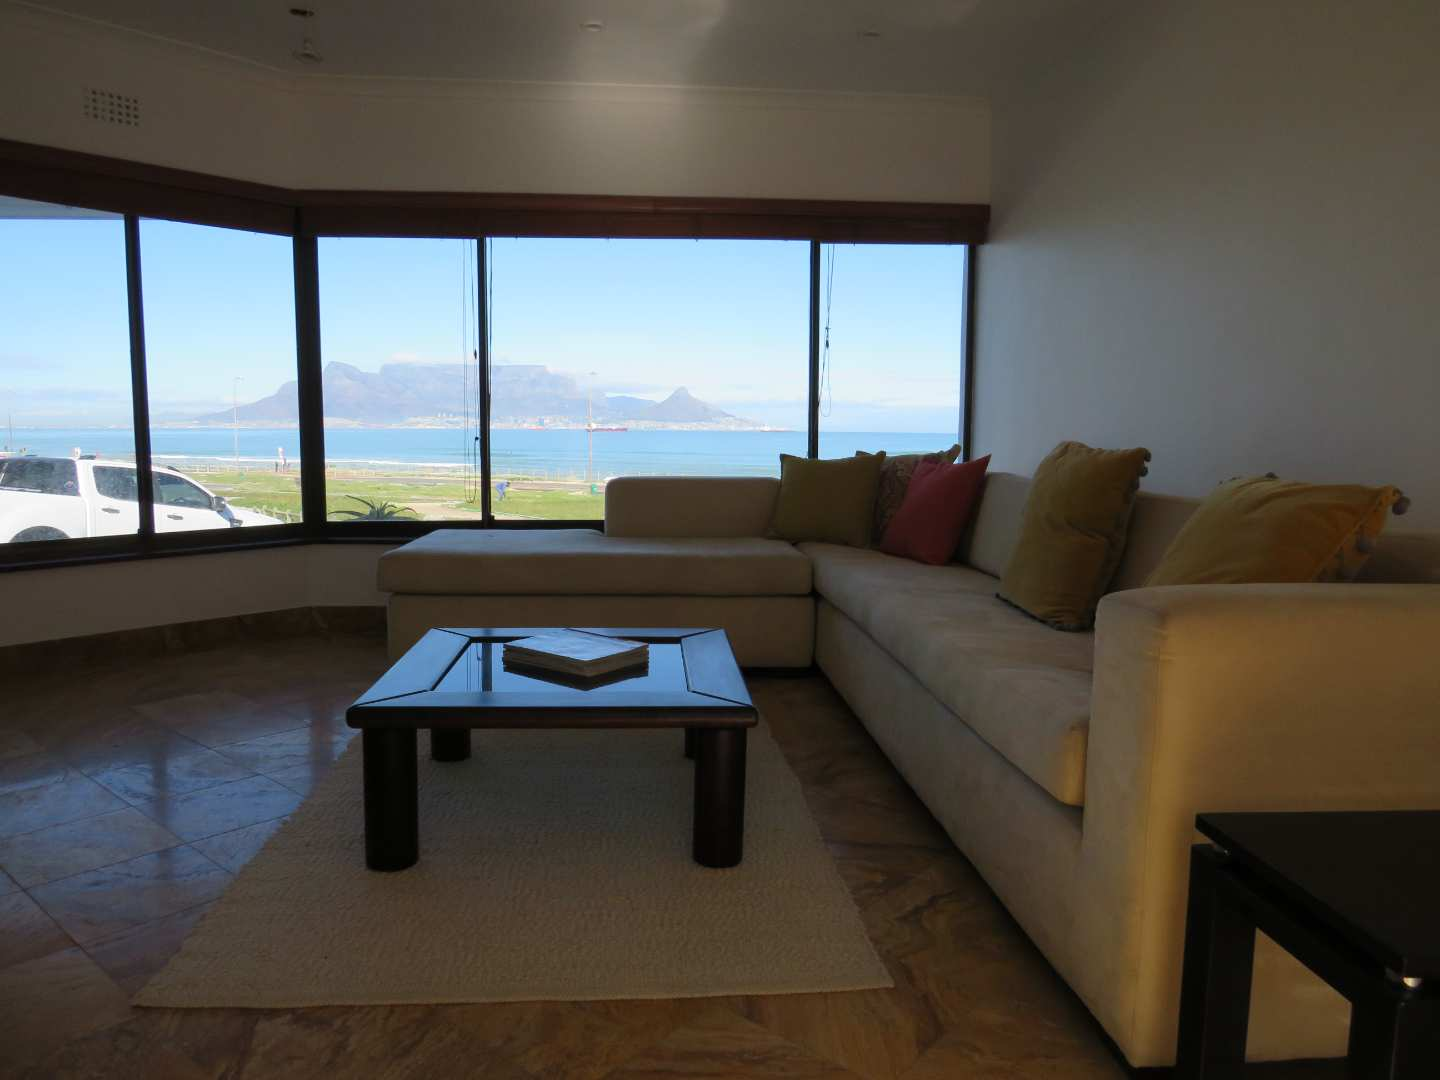 House Rental Monthly in Table View